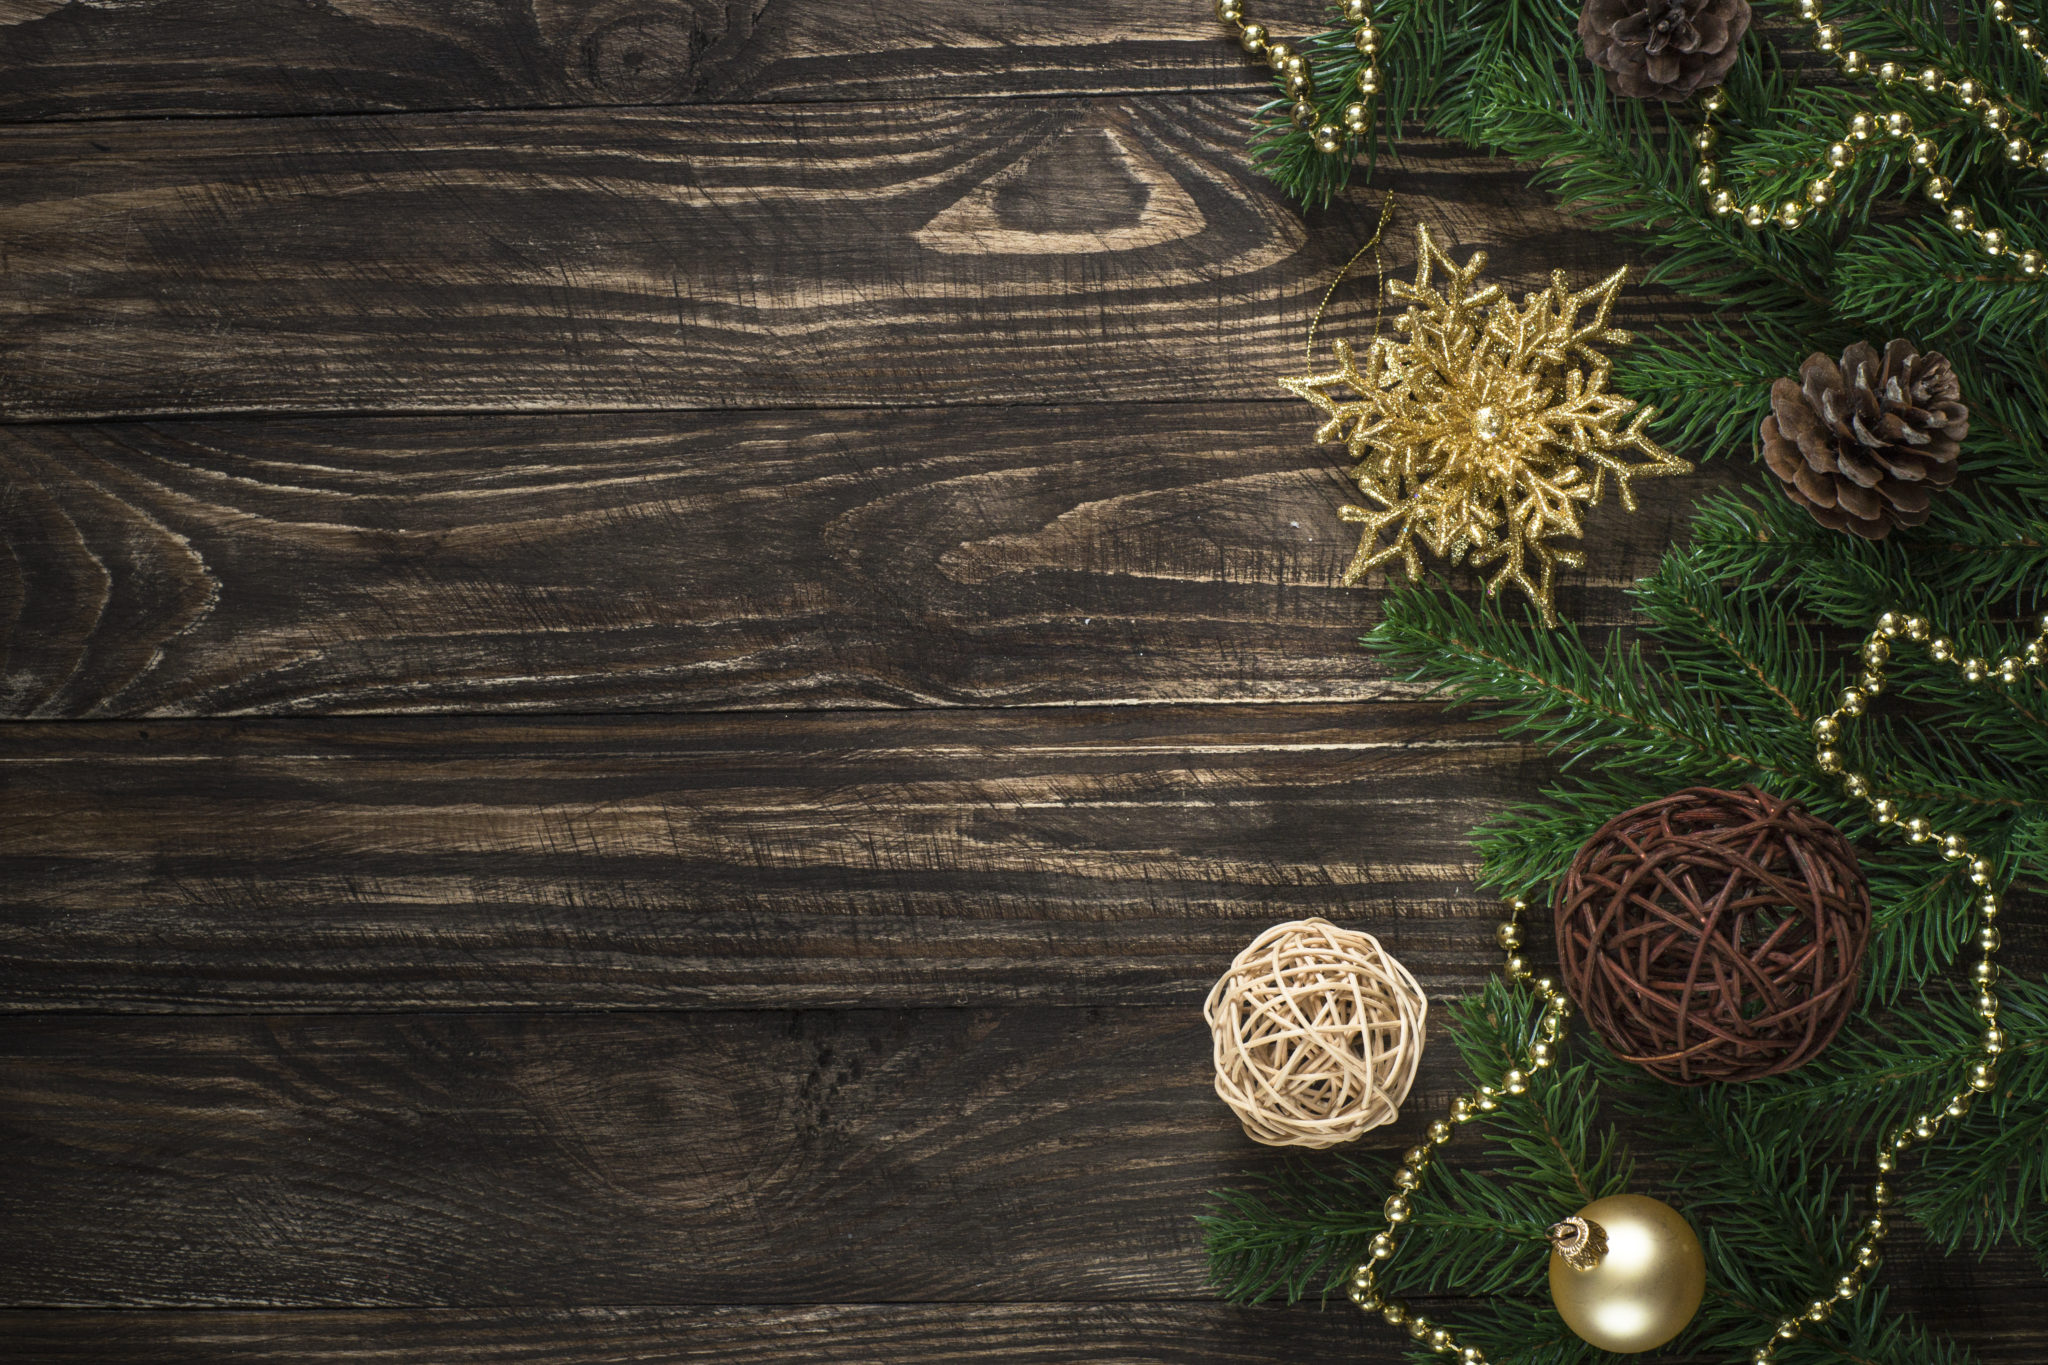 Christmas background with candle and decorations on dark wooden table. Top view with copy space.